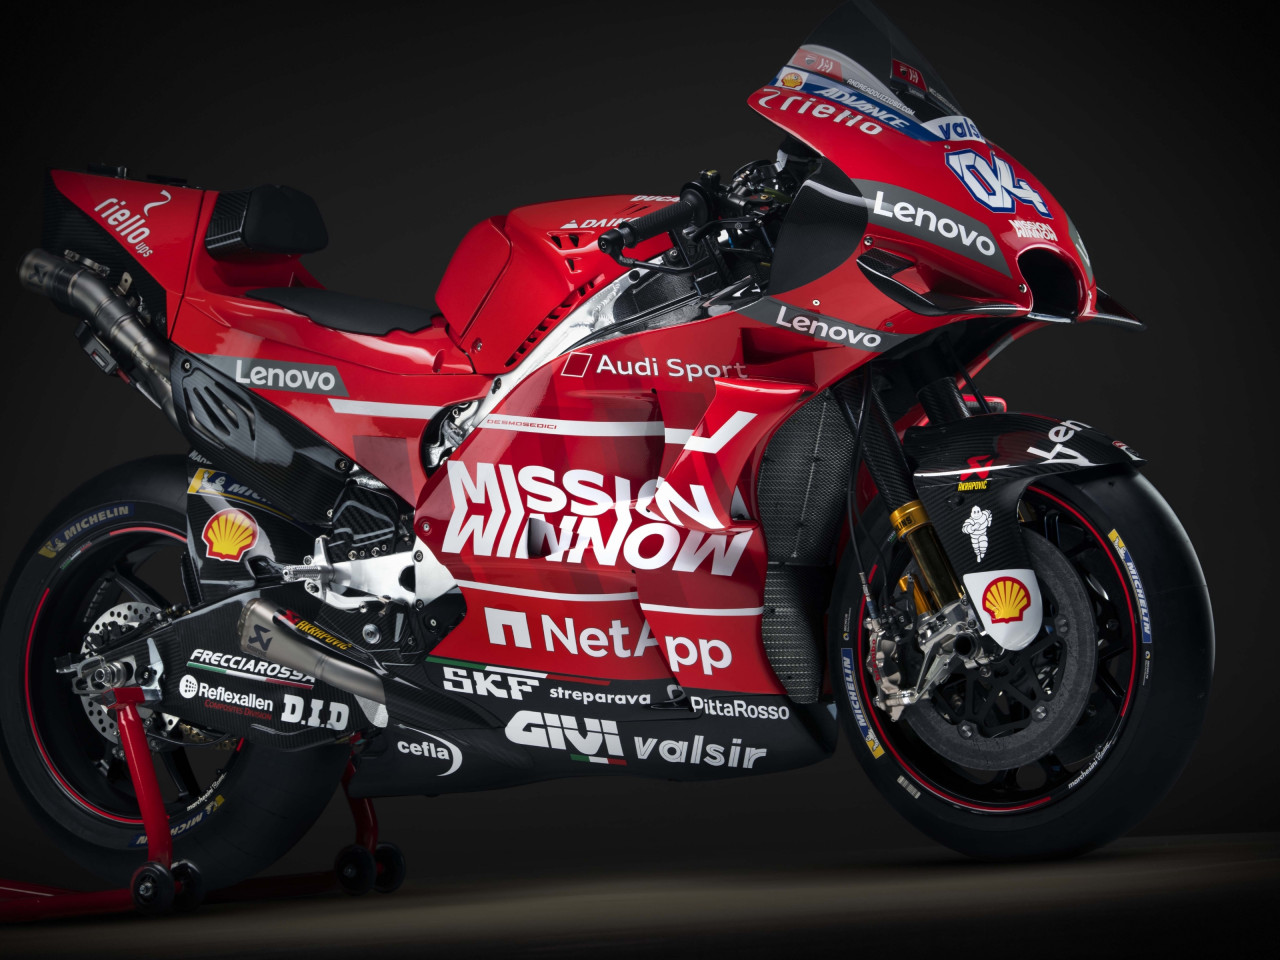 Ducati Desmosedici GP19 wallpaper 1280x960